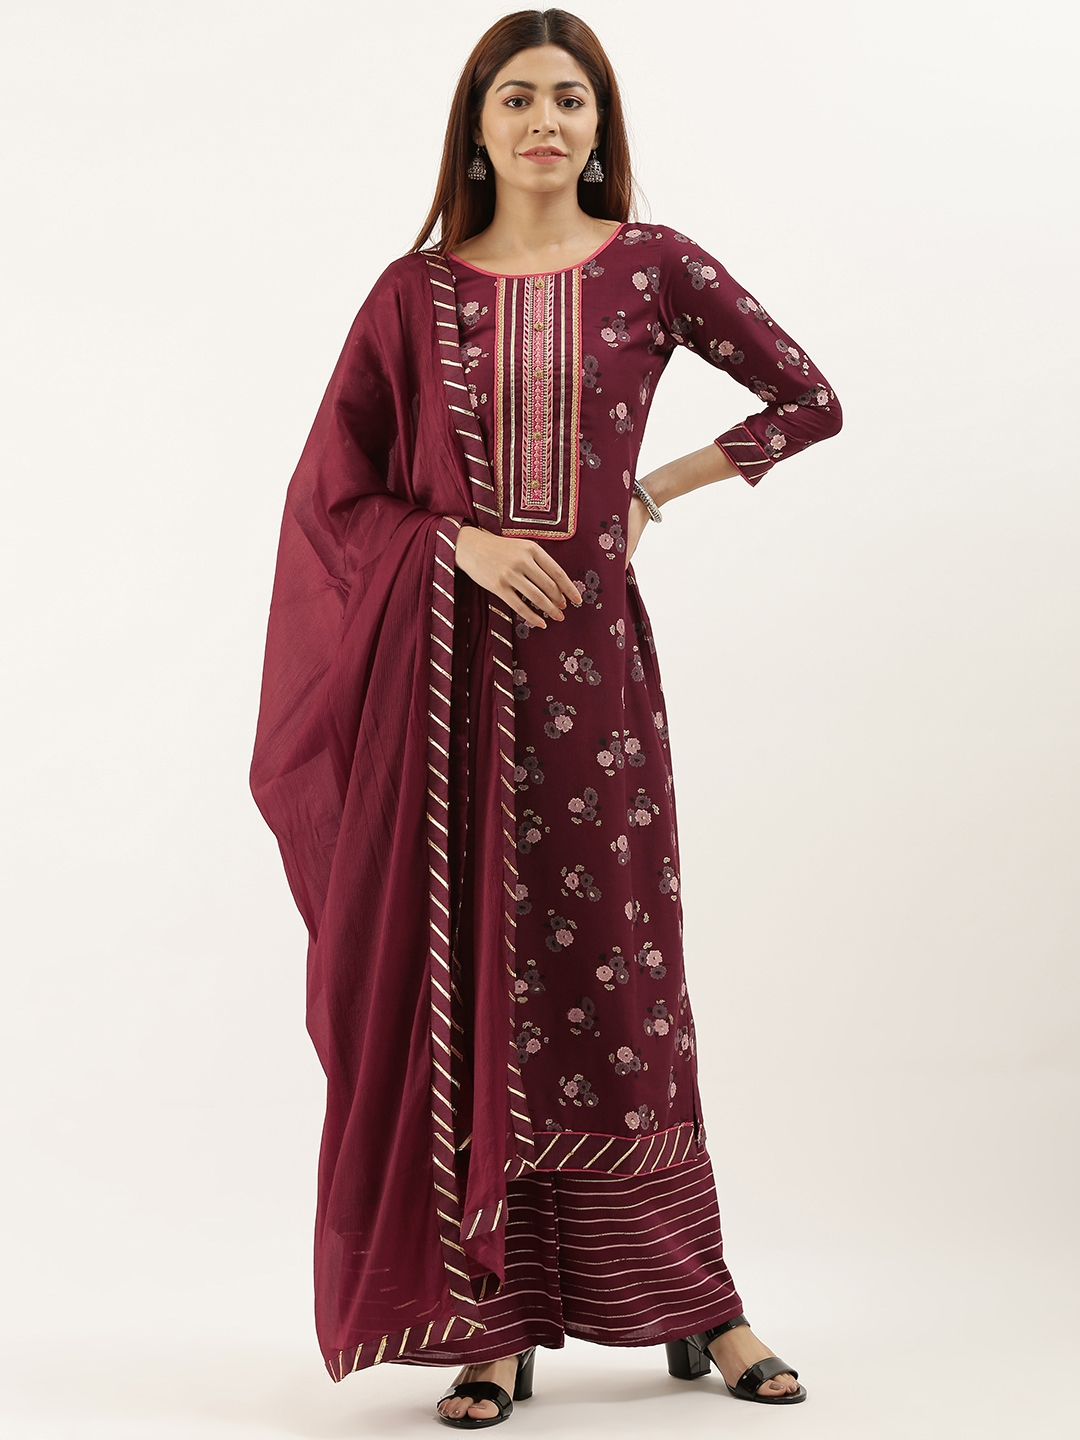 Kvsfab Maroon   Pink Printed Unstitched Dress Material With Embroidered Detailing